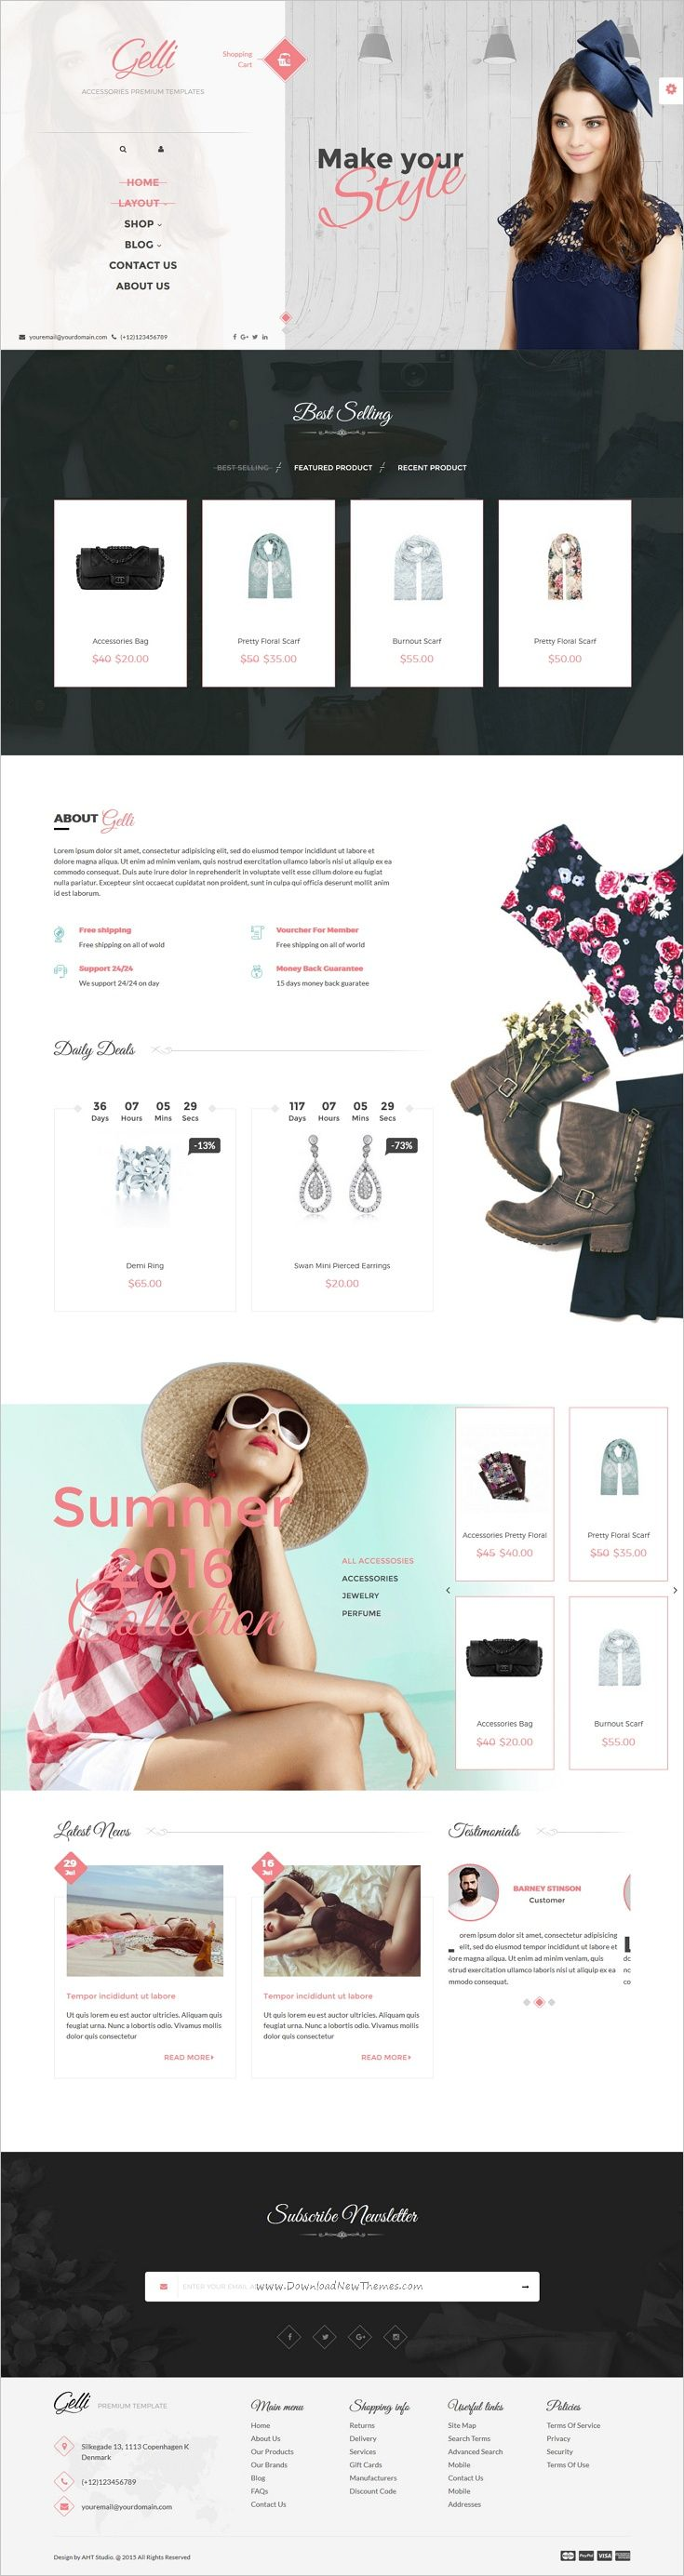 Gelli is a stylish modern and elegant design #WordPress theme for #webdev amazing #fashion shop eCommerce website with 7+ multipurpose homepage layouts download now➩  https://themeforest.net/item/gelli-woocommerce-theme-for-jewelry-perfume-accessories-handmade-store/18023071?ref=Datasata